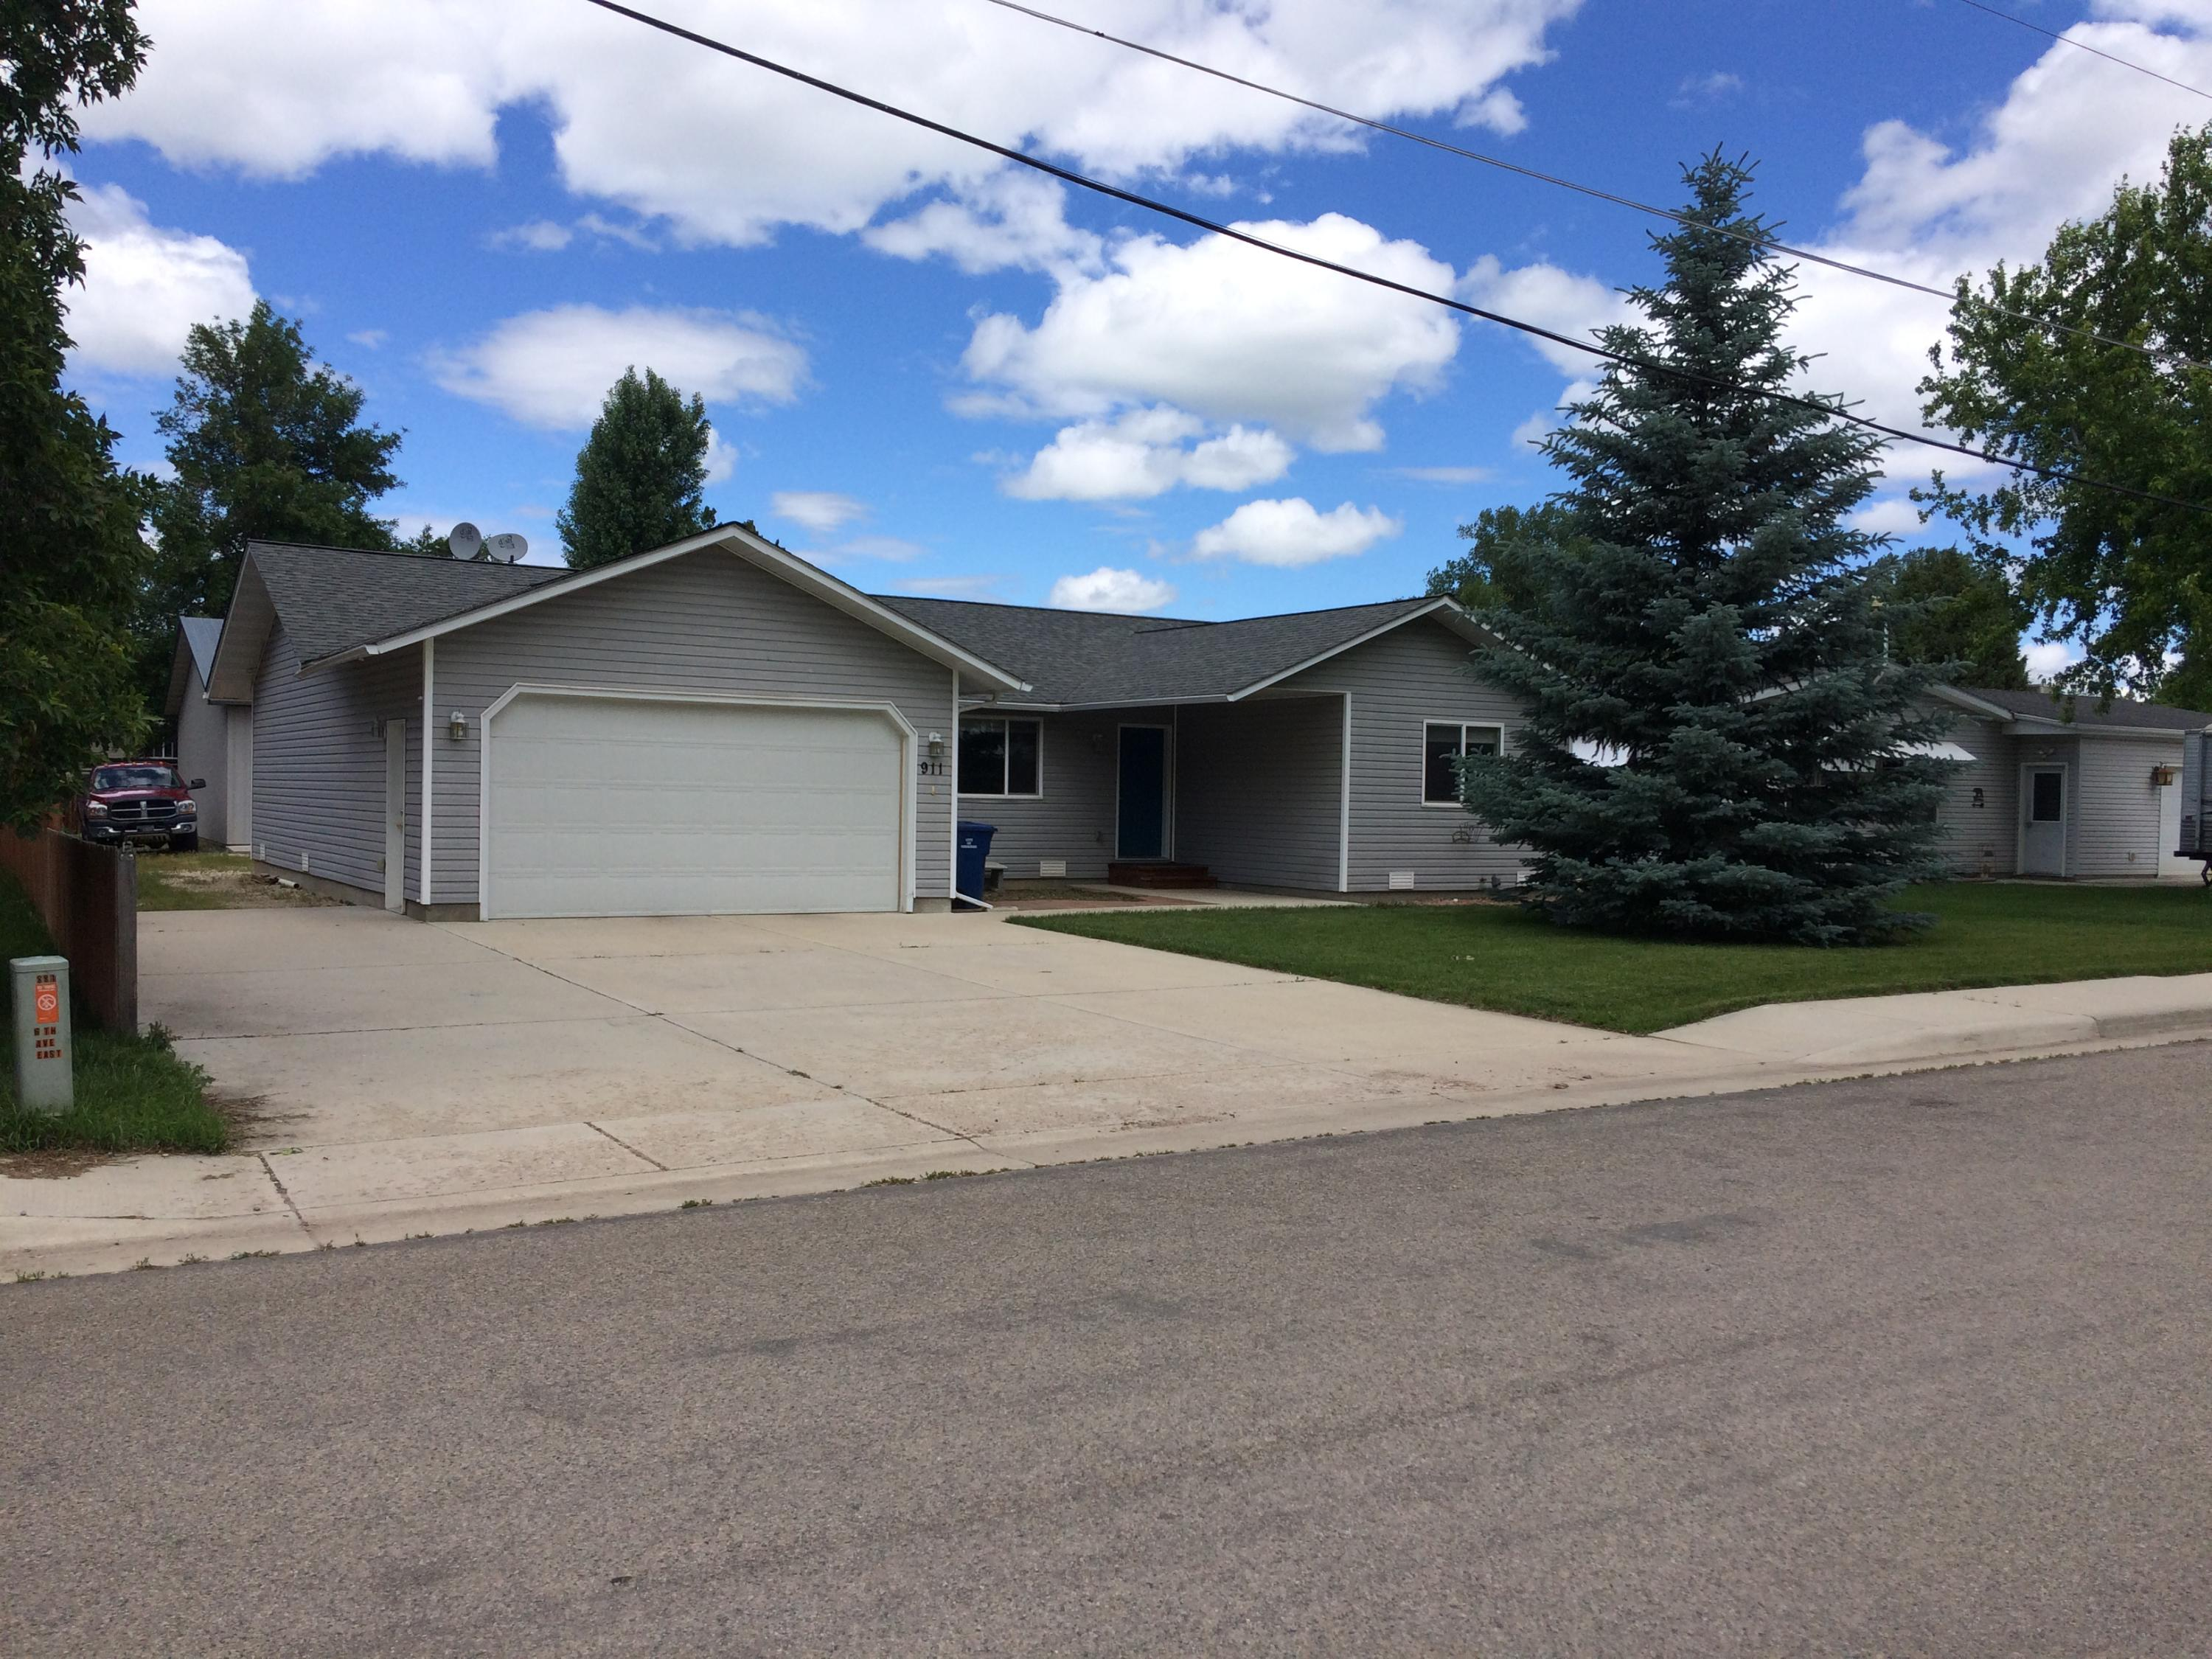 911 6th Avenue East, Sheridan, Wyoming 82801, 3 Bedrooms Bedrooms, ,2 BathroomsBathrooms,Residential,For Sale,6th Avenue East,19-668